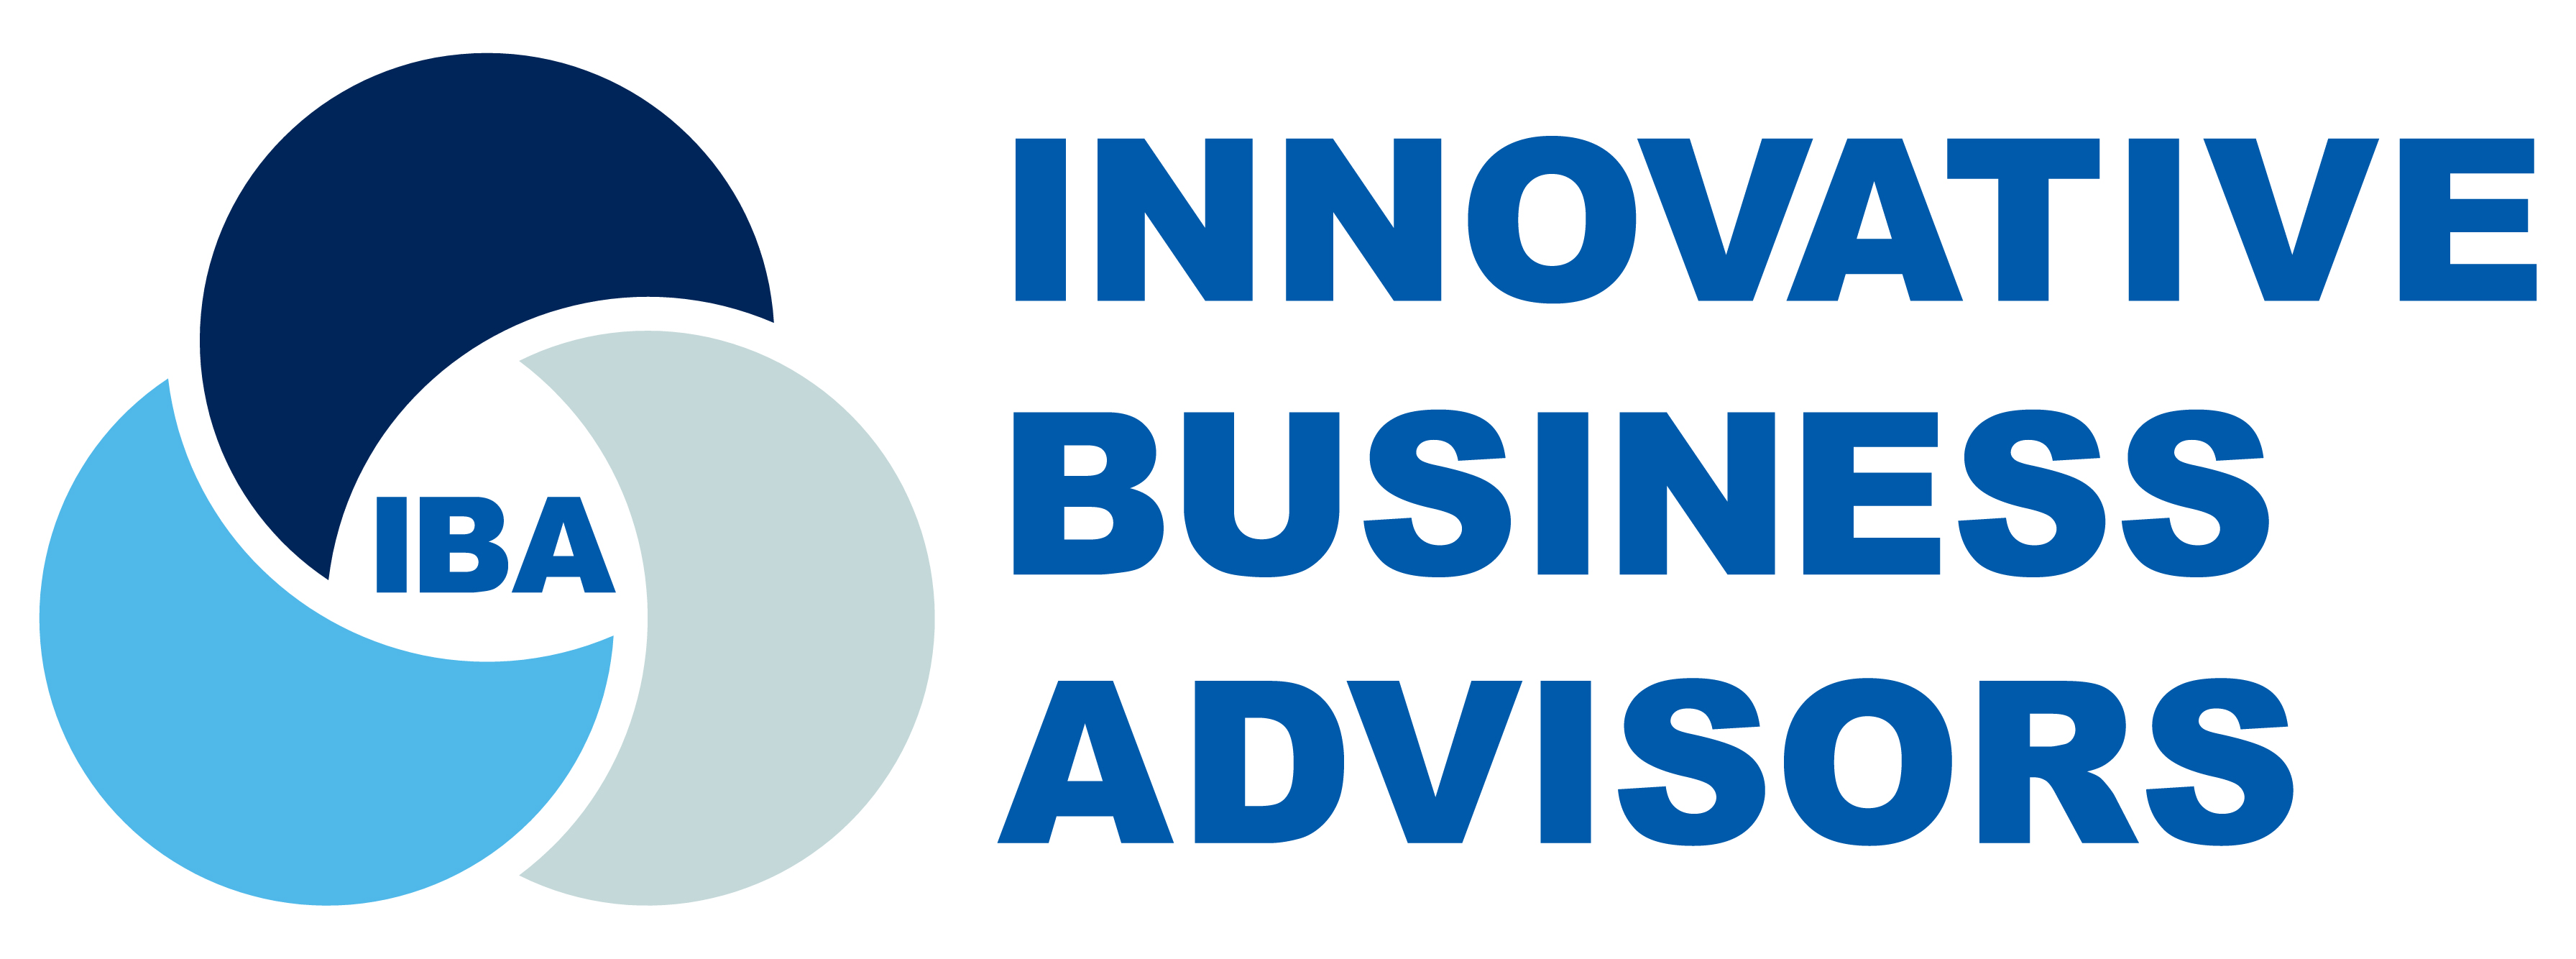 Innovative Business Advisors-logo